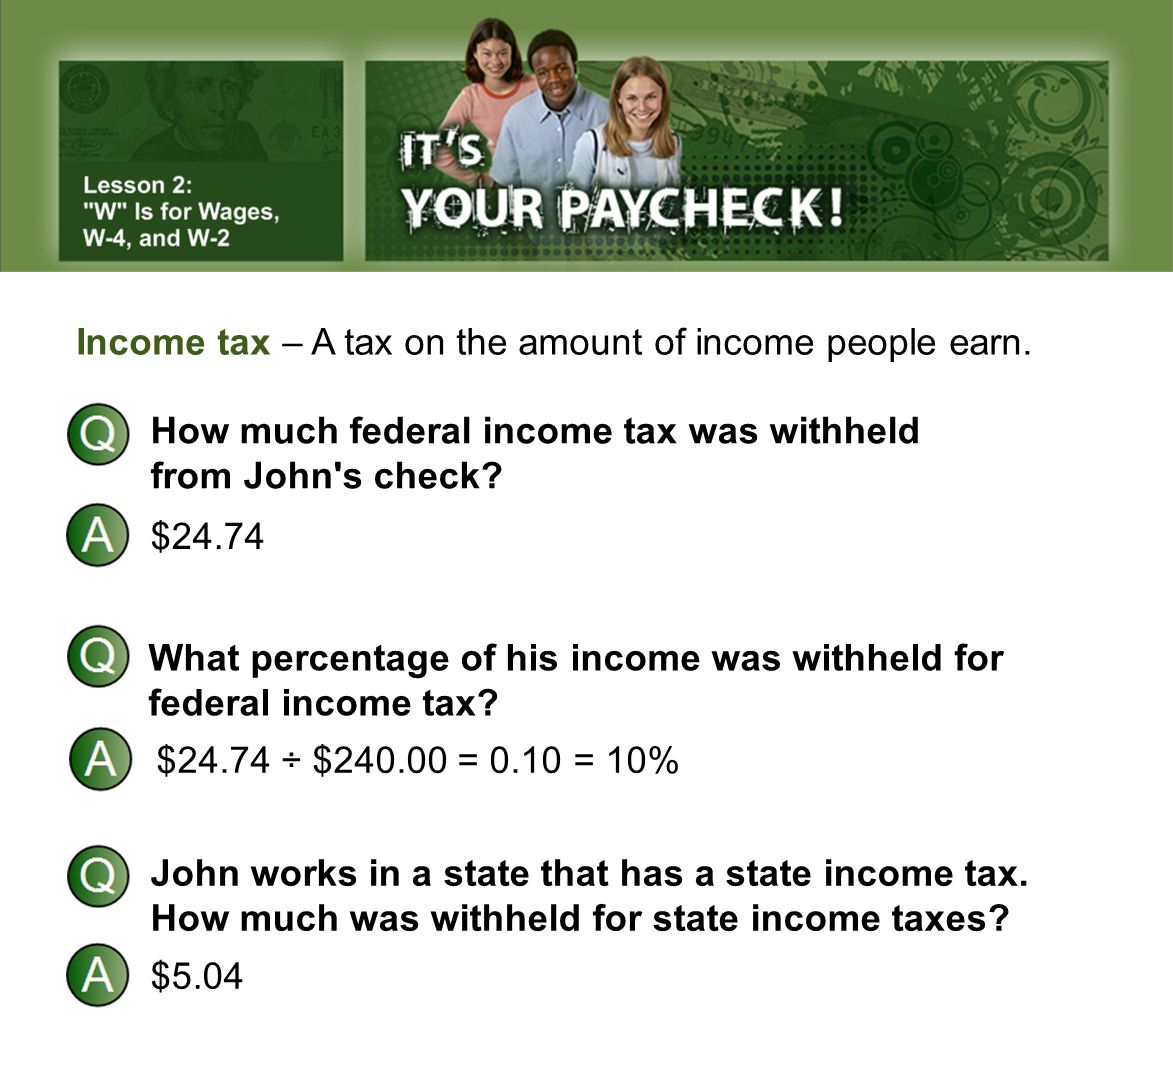 Income tax – A tax on the amount of income people earn.